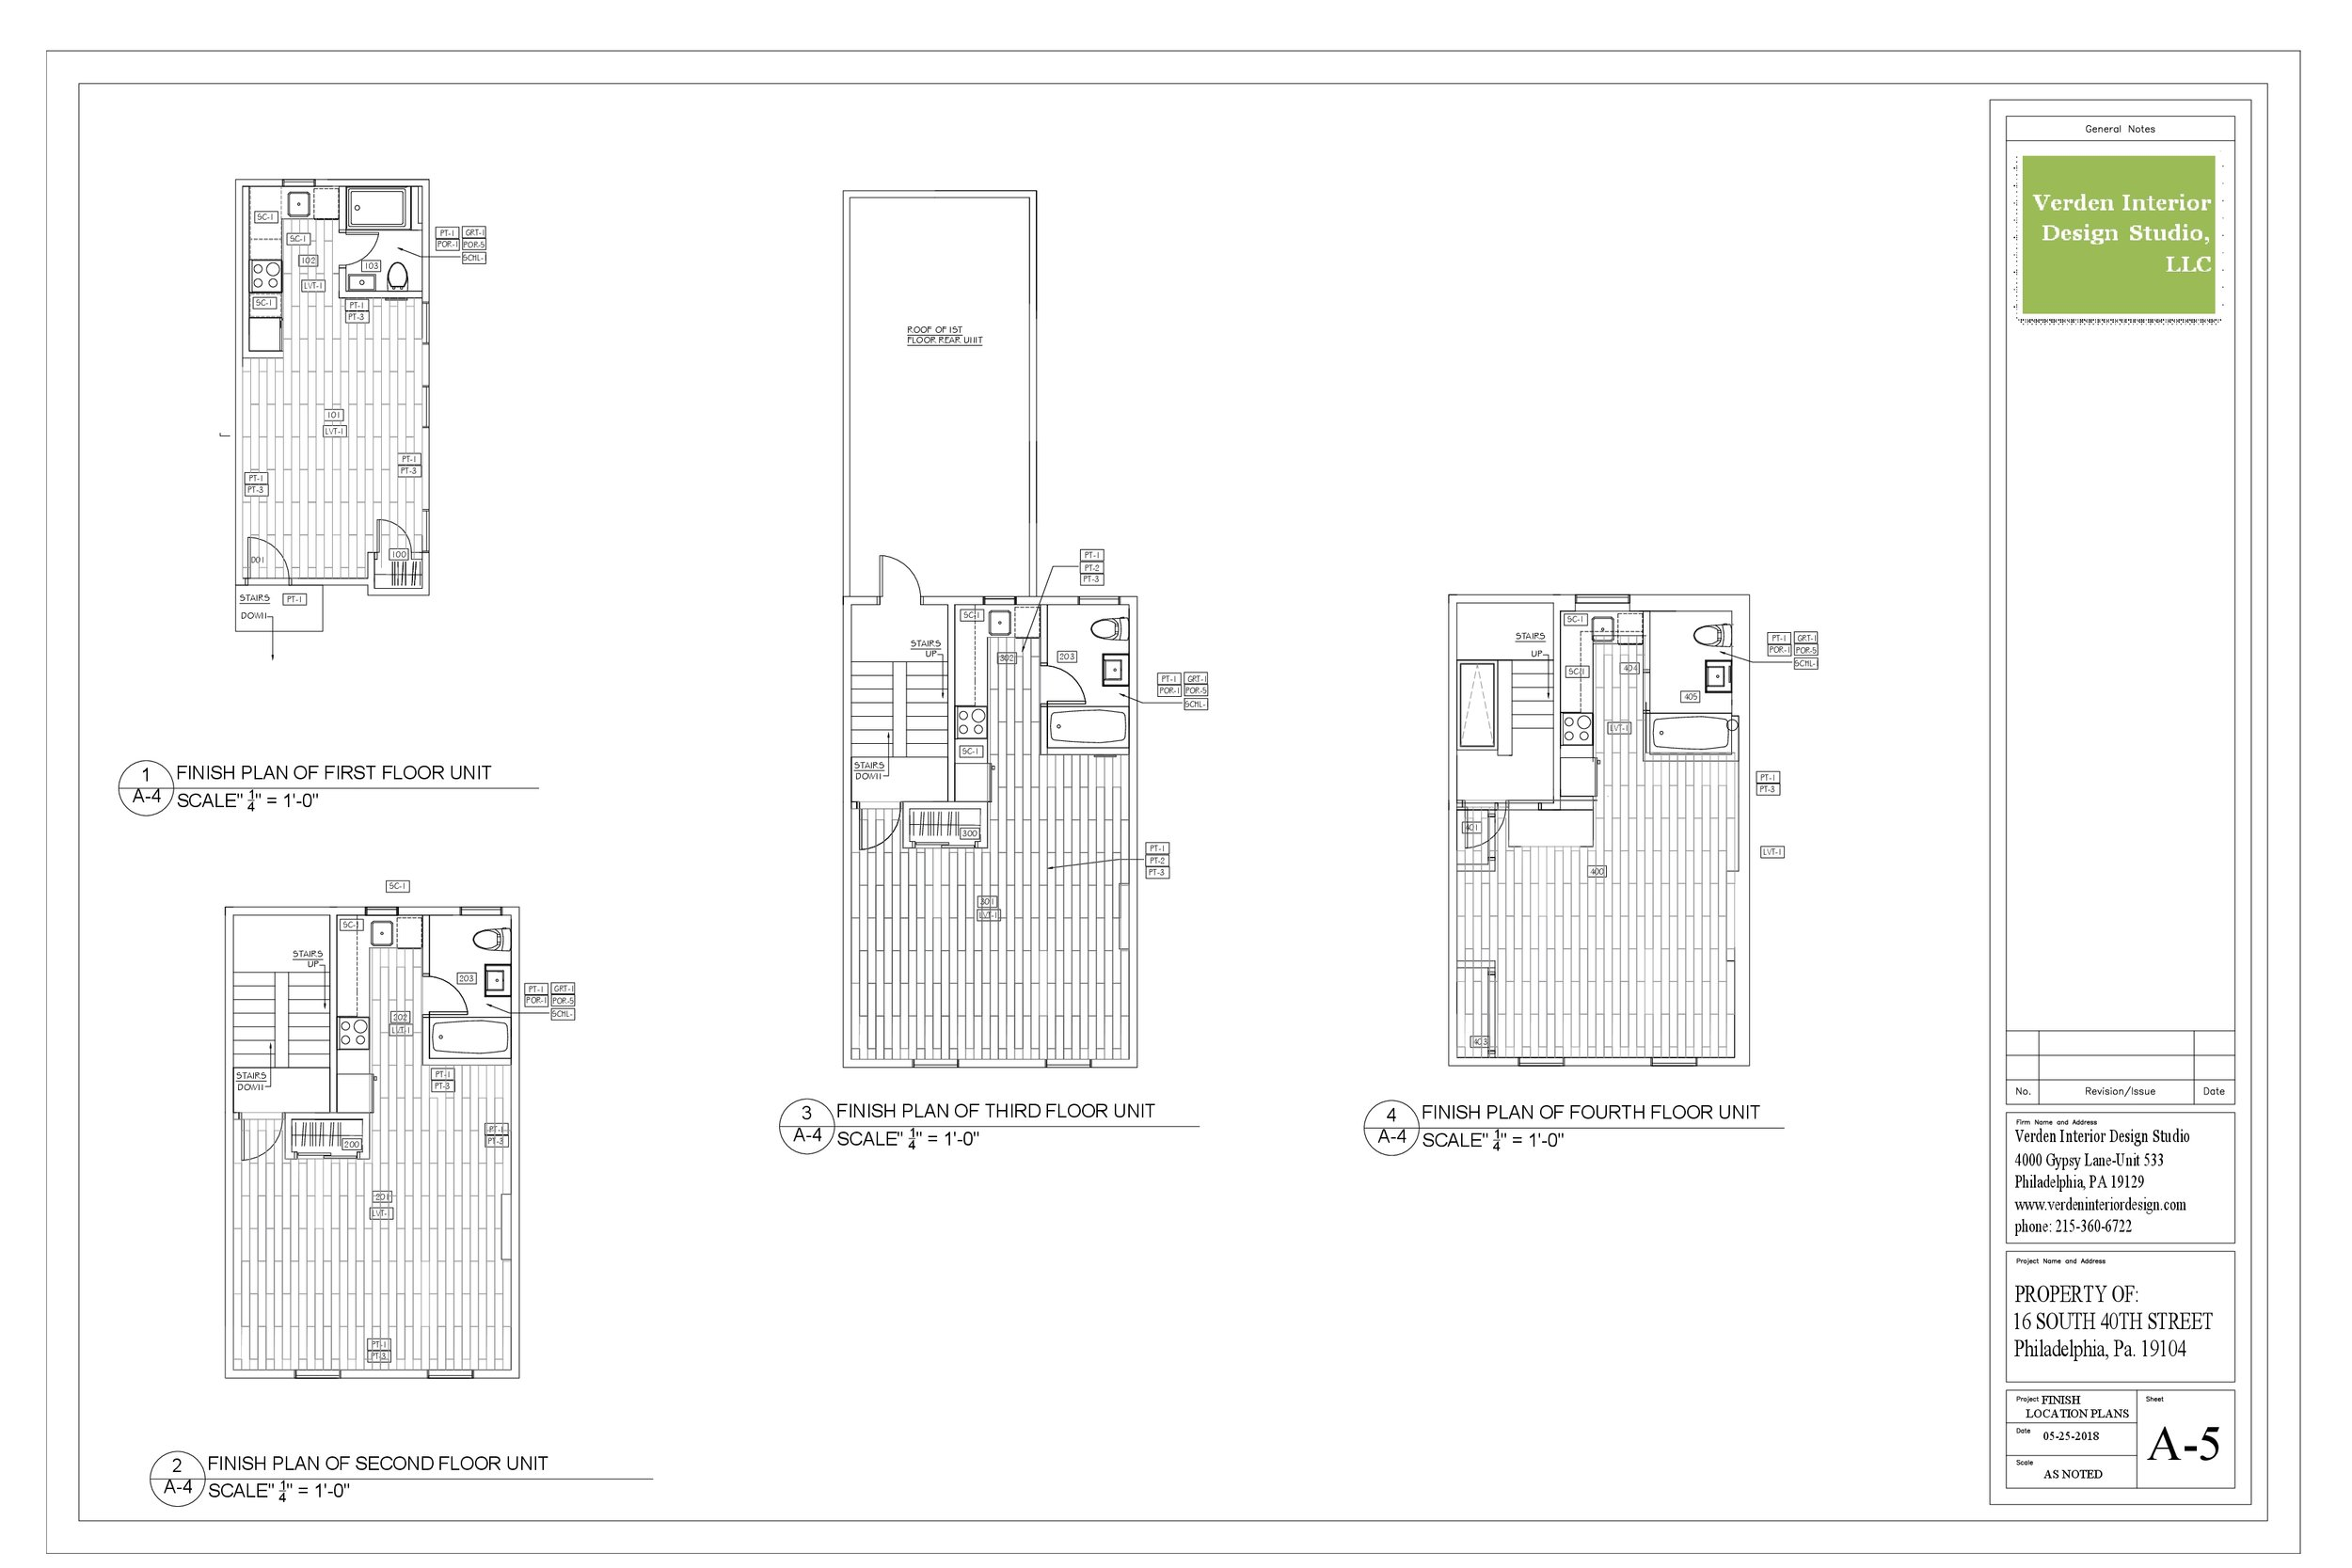 cad space plans_16south40th-A-5.jpg